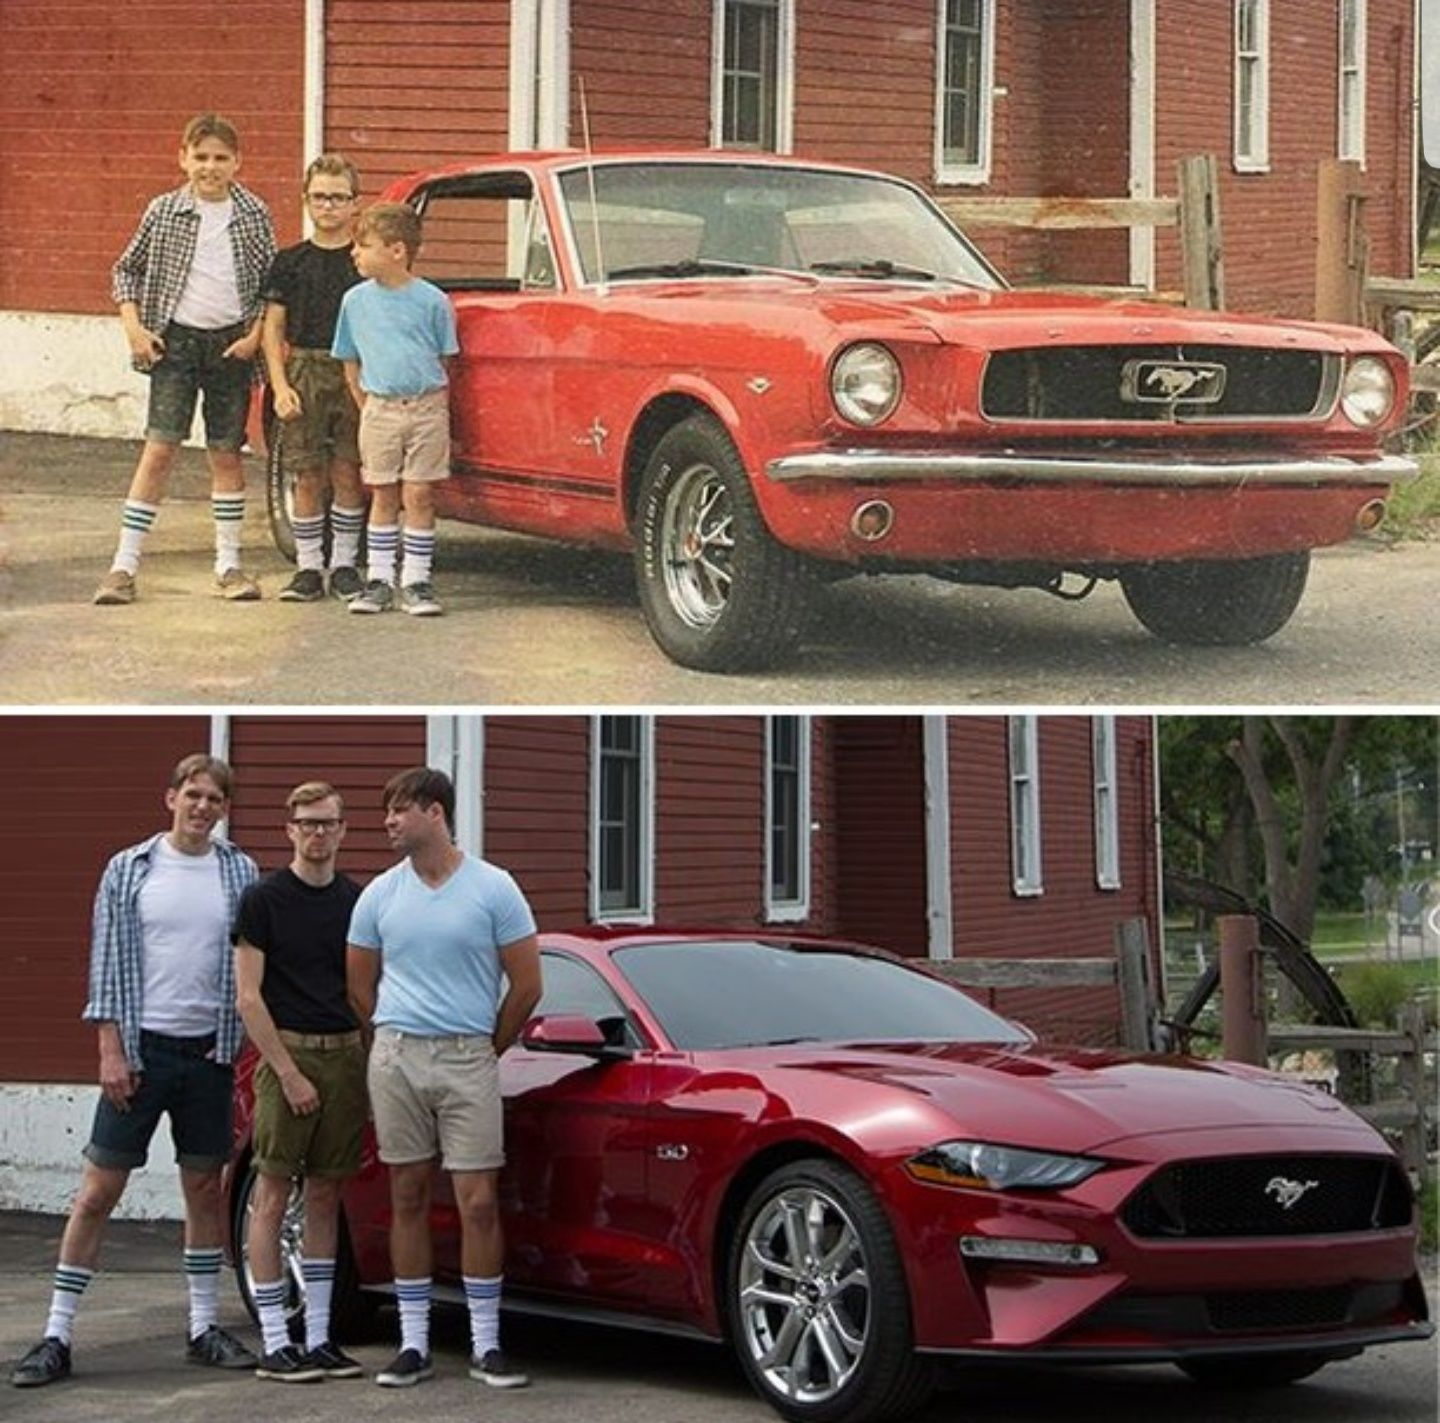 For dad or Ford ad